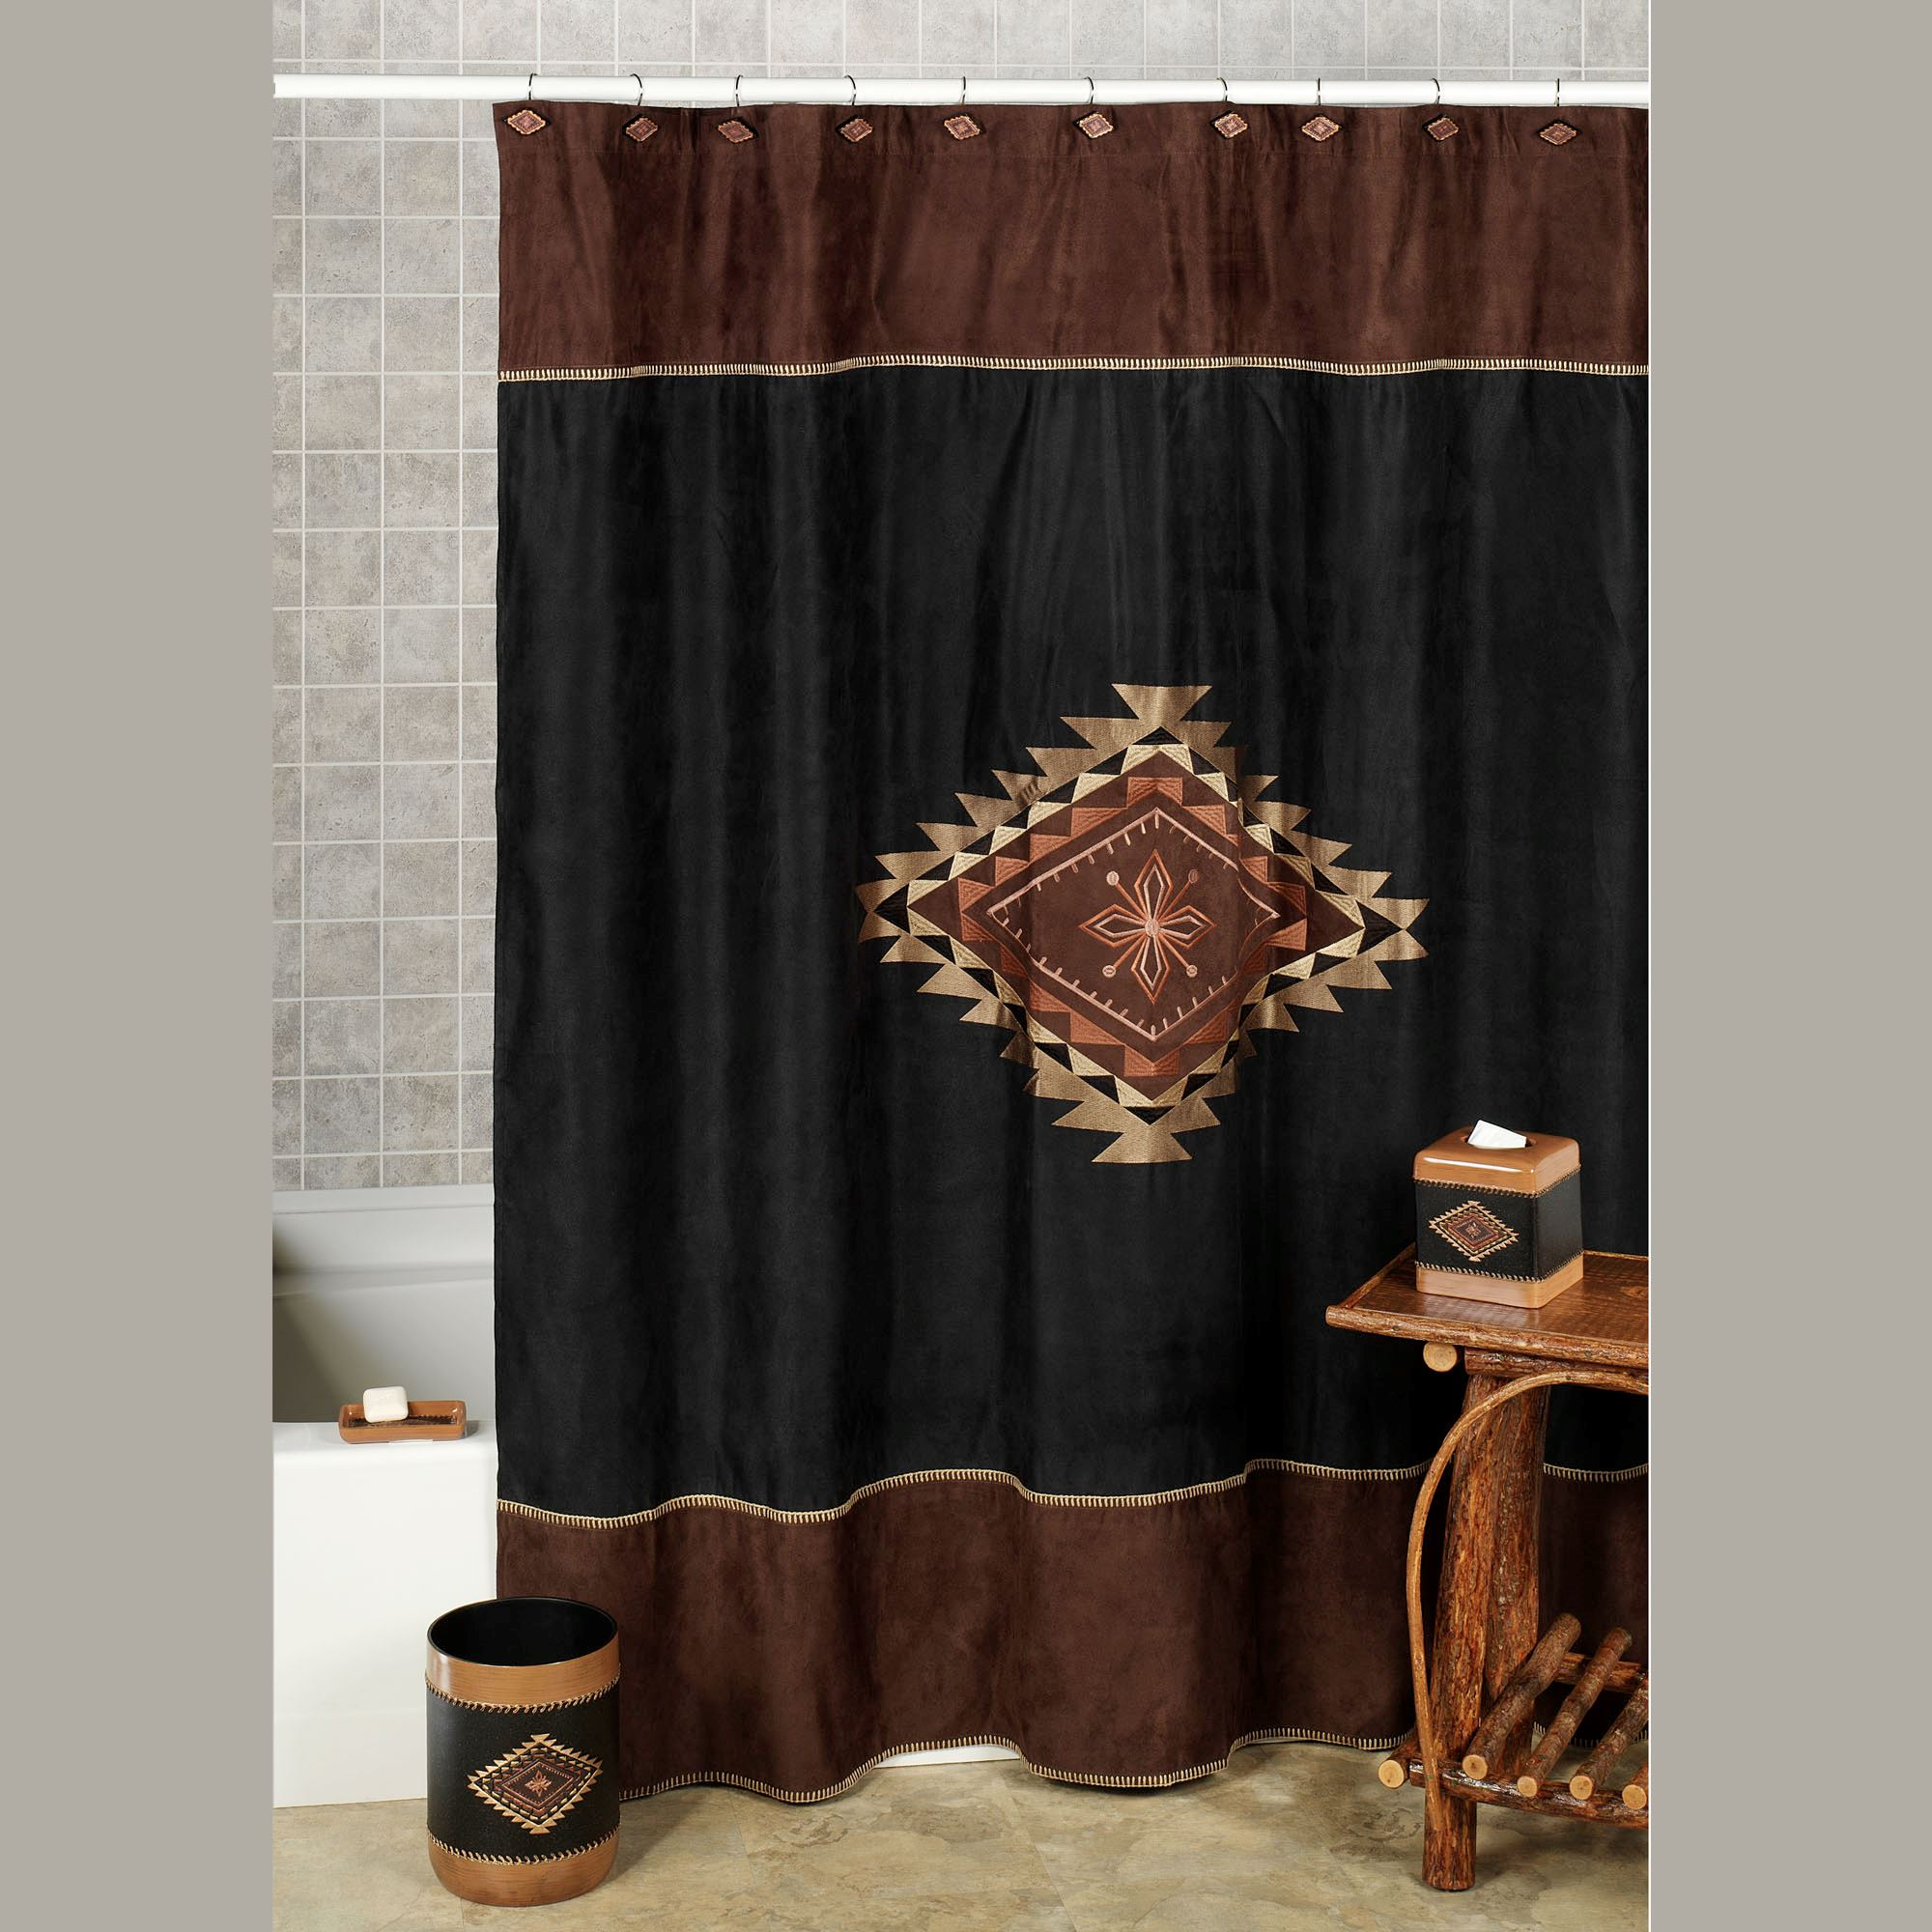 Colton Shower Curtain Multi Warm 72 X